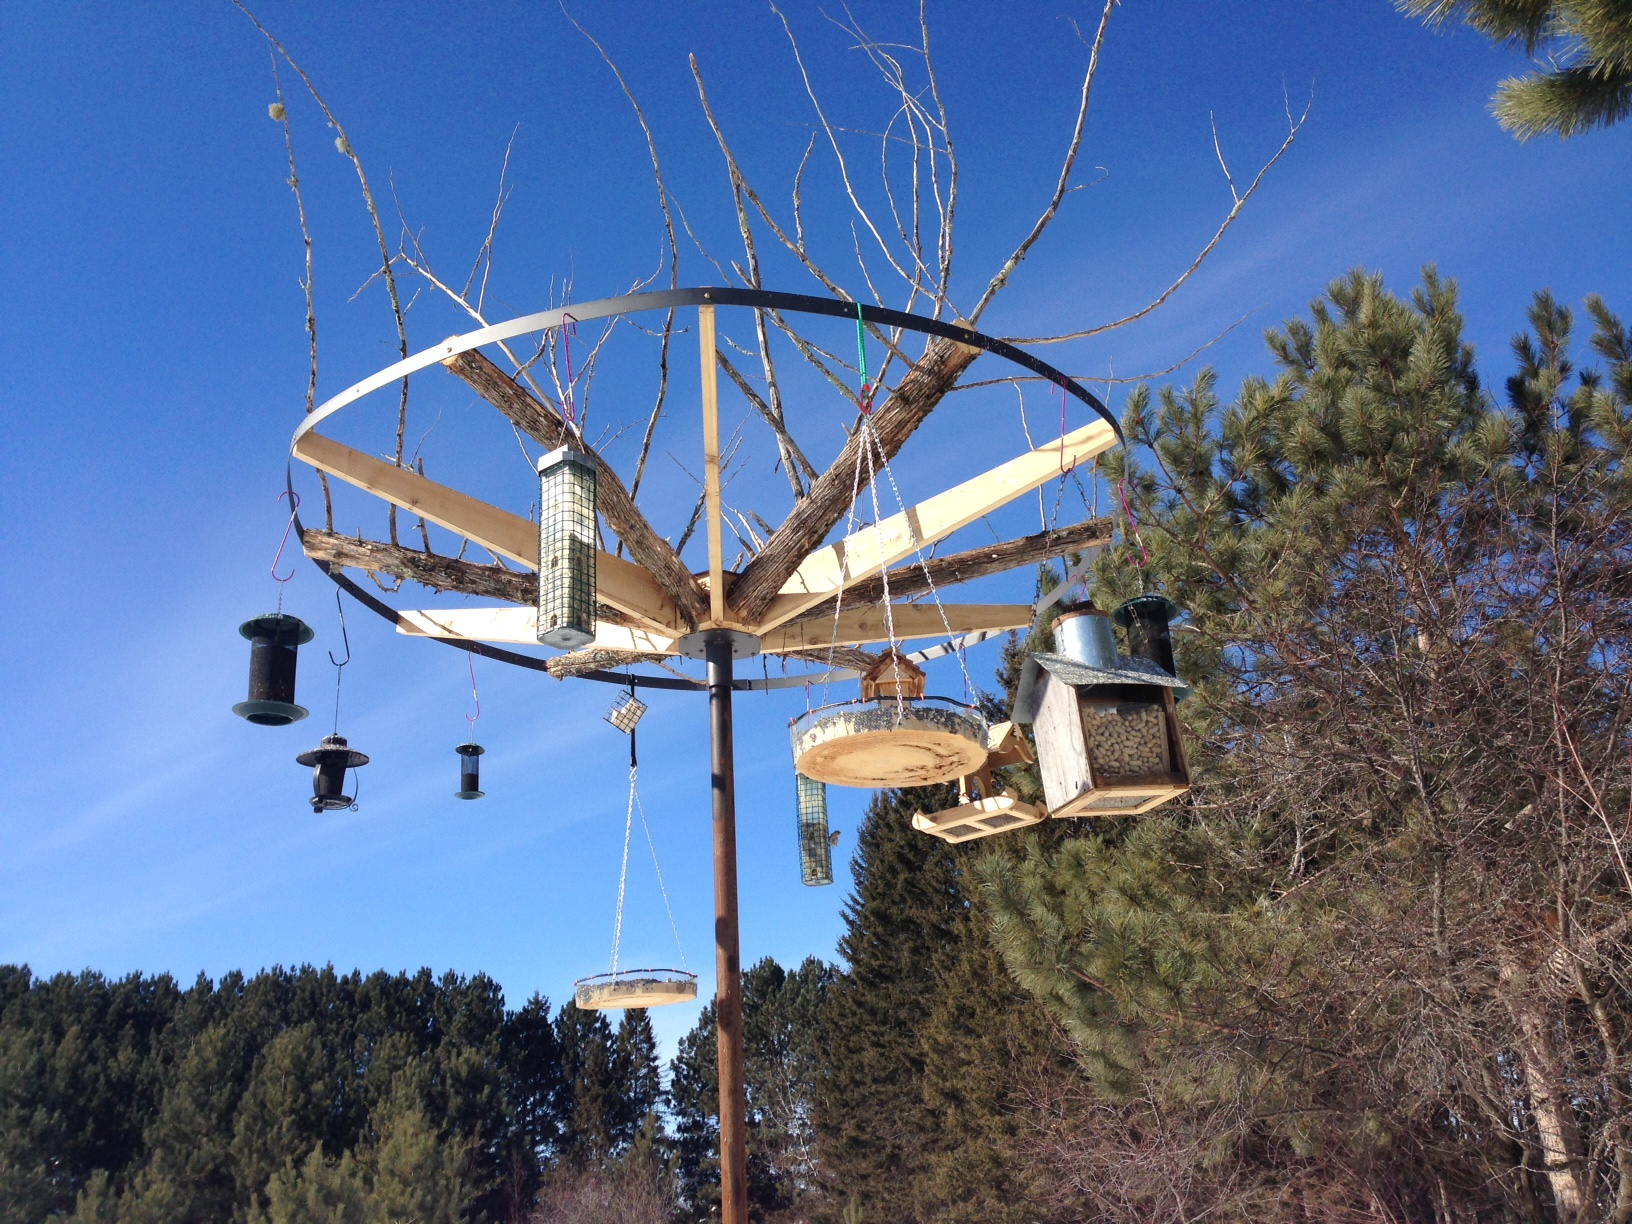 Custom Feeder Hub at Birds' Landing